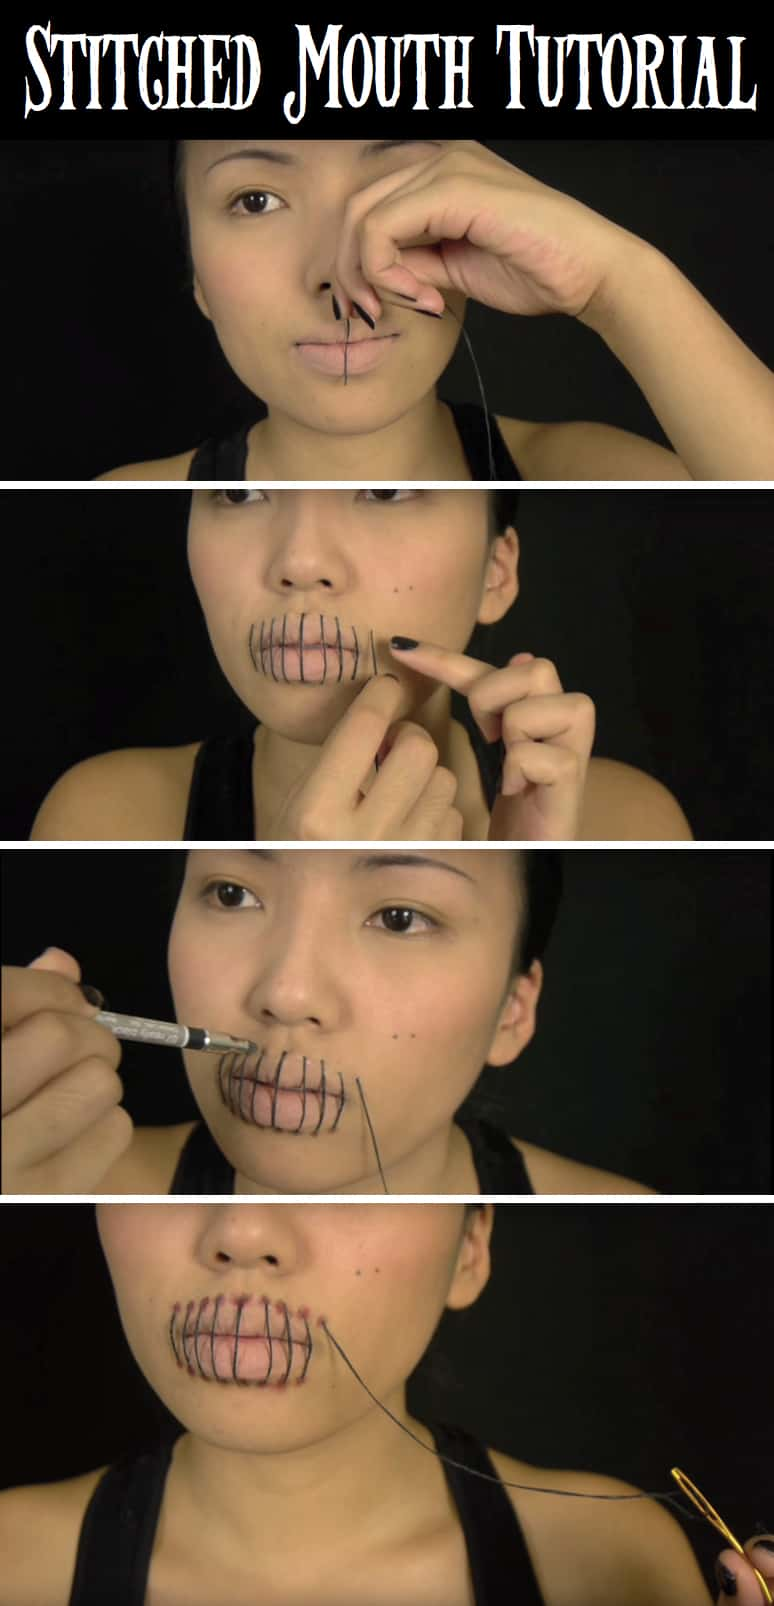 Stitched mouth makeup tutorial